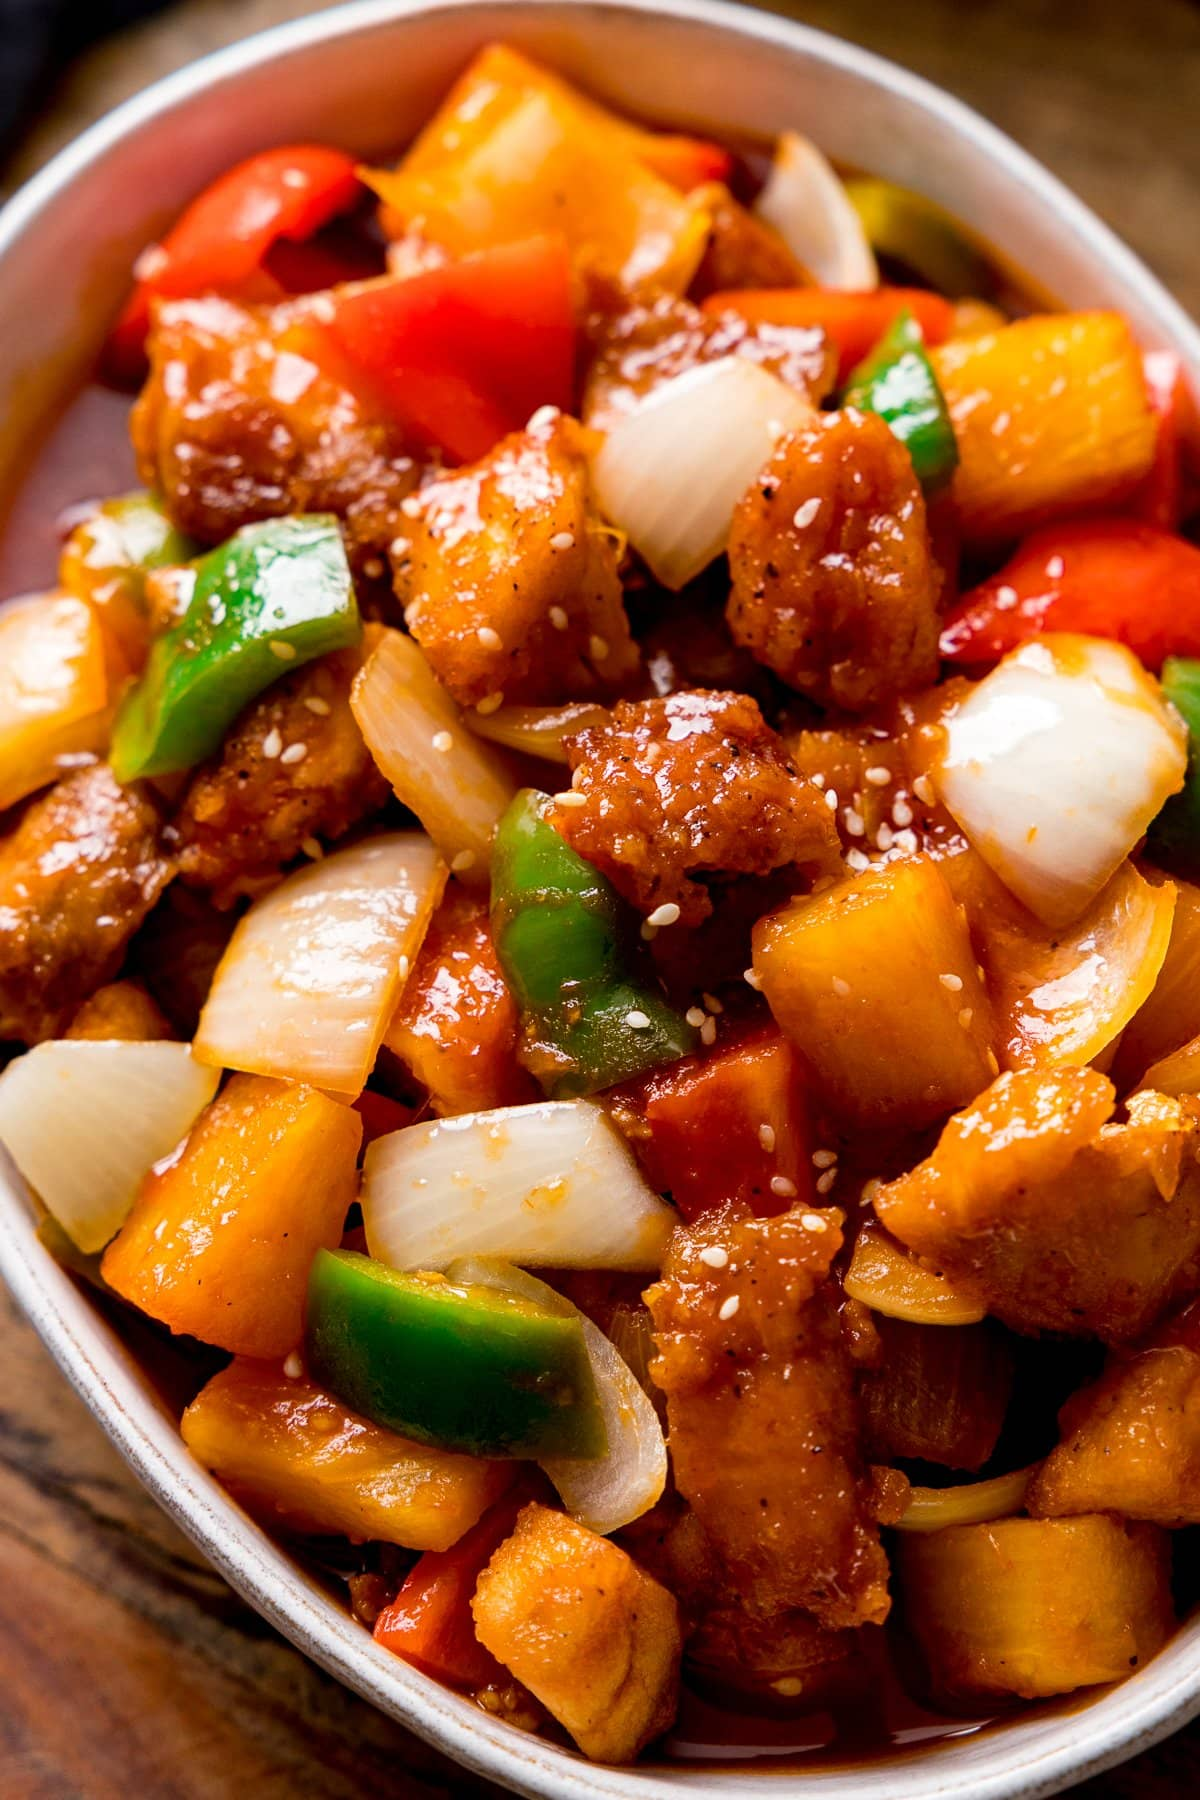 Close up of Sweet and sour turkey in a white bowl.